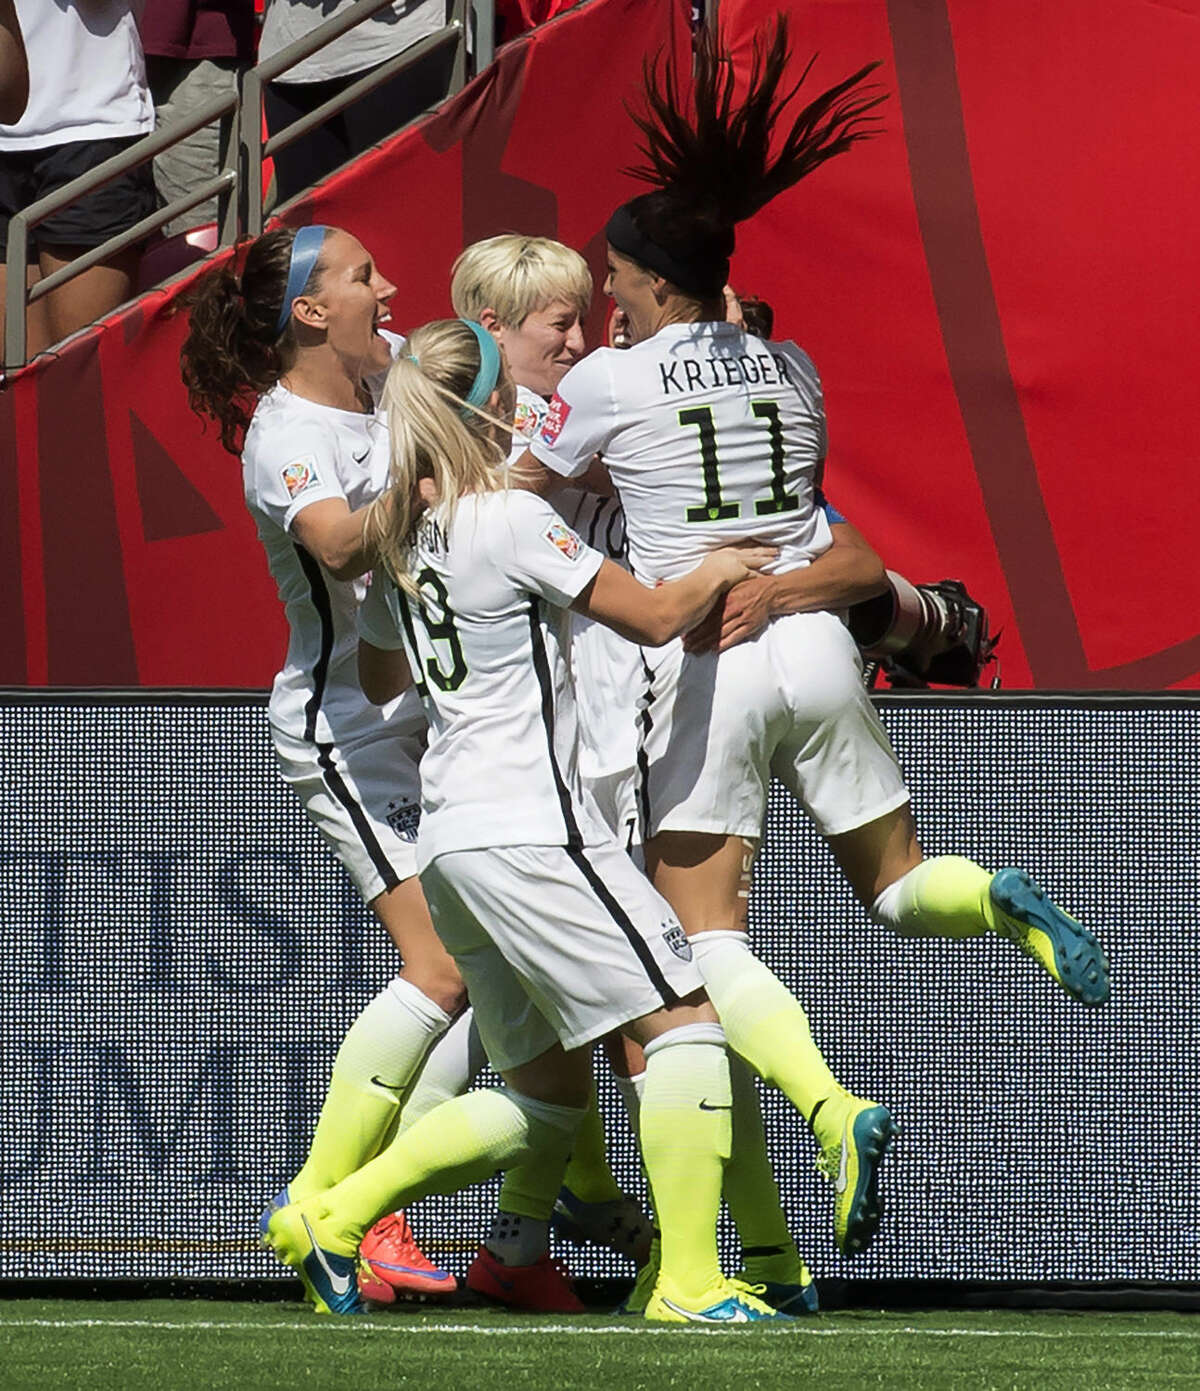 The United States team celebrates Carli Lloyd's goal during the first half of the FIFA World Cup soccer championship against Japan in Vancouver, British Columbia, Canada, Sunday, July 5, 2015. (Jonathan Hayward/The Canadian Press via AP) MANDATORY CREDIT